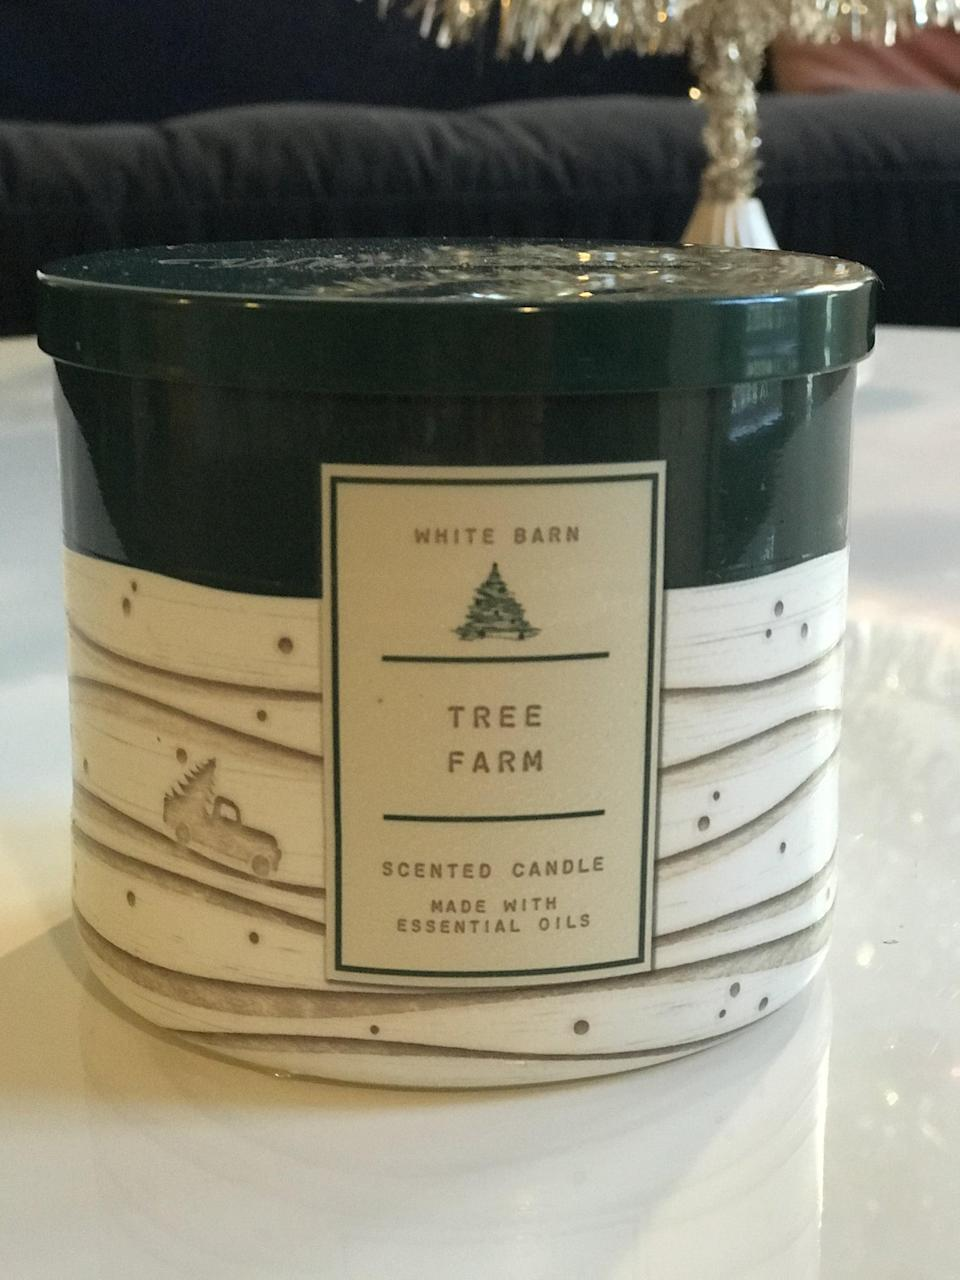 """<p><span>Tree Farm 3-Wick Candle</span> ($15, originally $25)</p> <p><strong>What It Smells Like:</strong> <a class=""""link rapid-noclick-resp"""" href=""""https://www.popsugar.com/Taylor-Swift"""" rel=""""nofollow noopener"""" target=""""_blank"""" data-ylk=""""slk:Taylor Swift"""">Taylor Swift</a> would probably love this candle. It smells like spending a day picking out your perfect Christmas tree.</p>"""